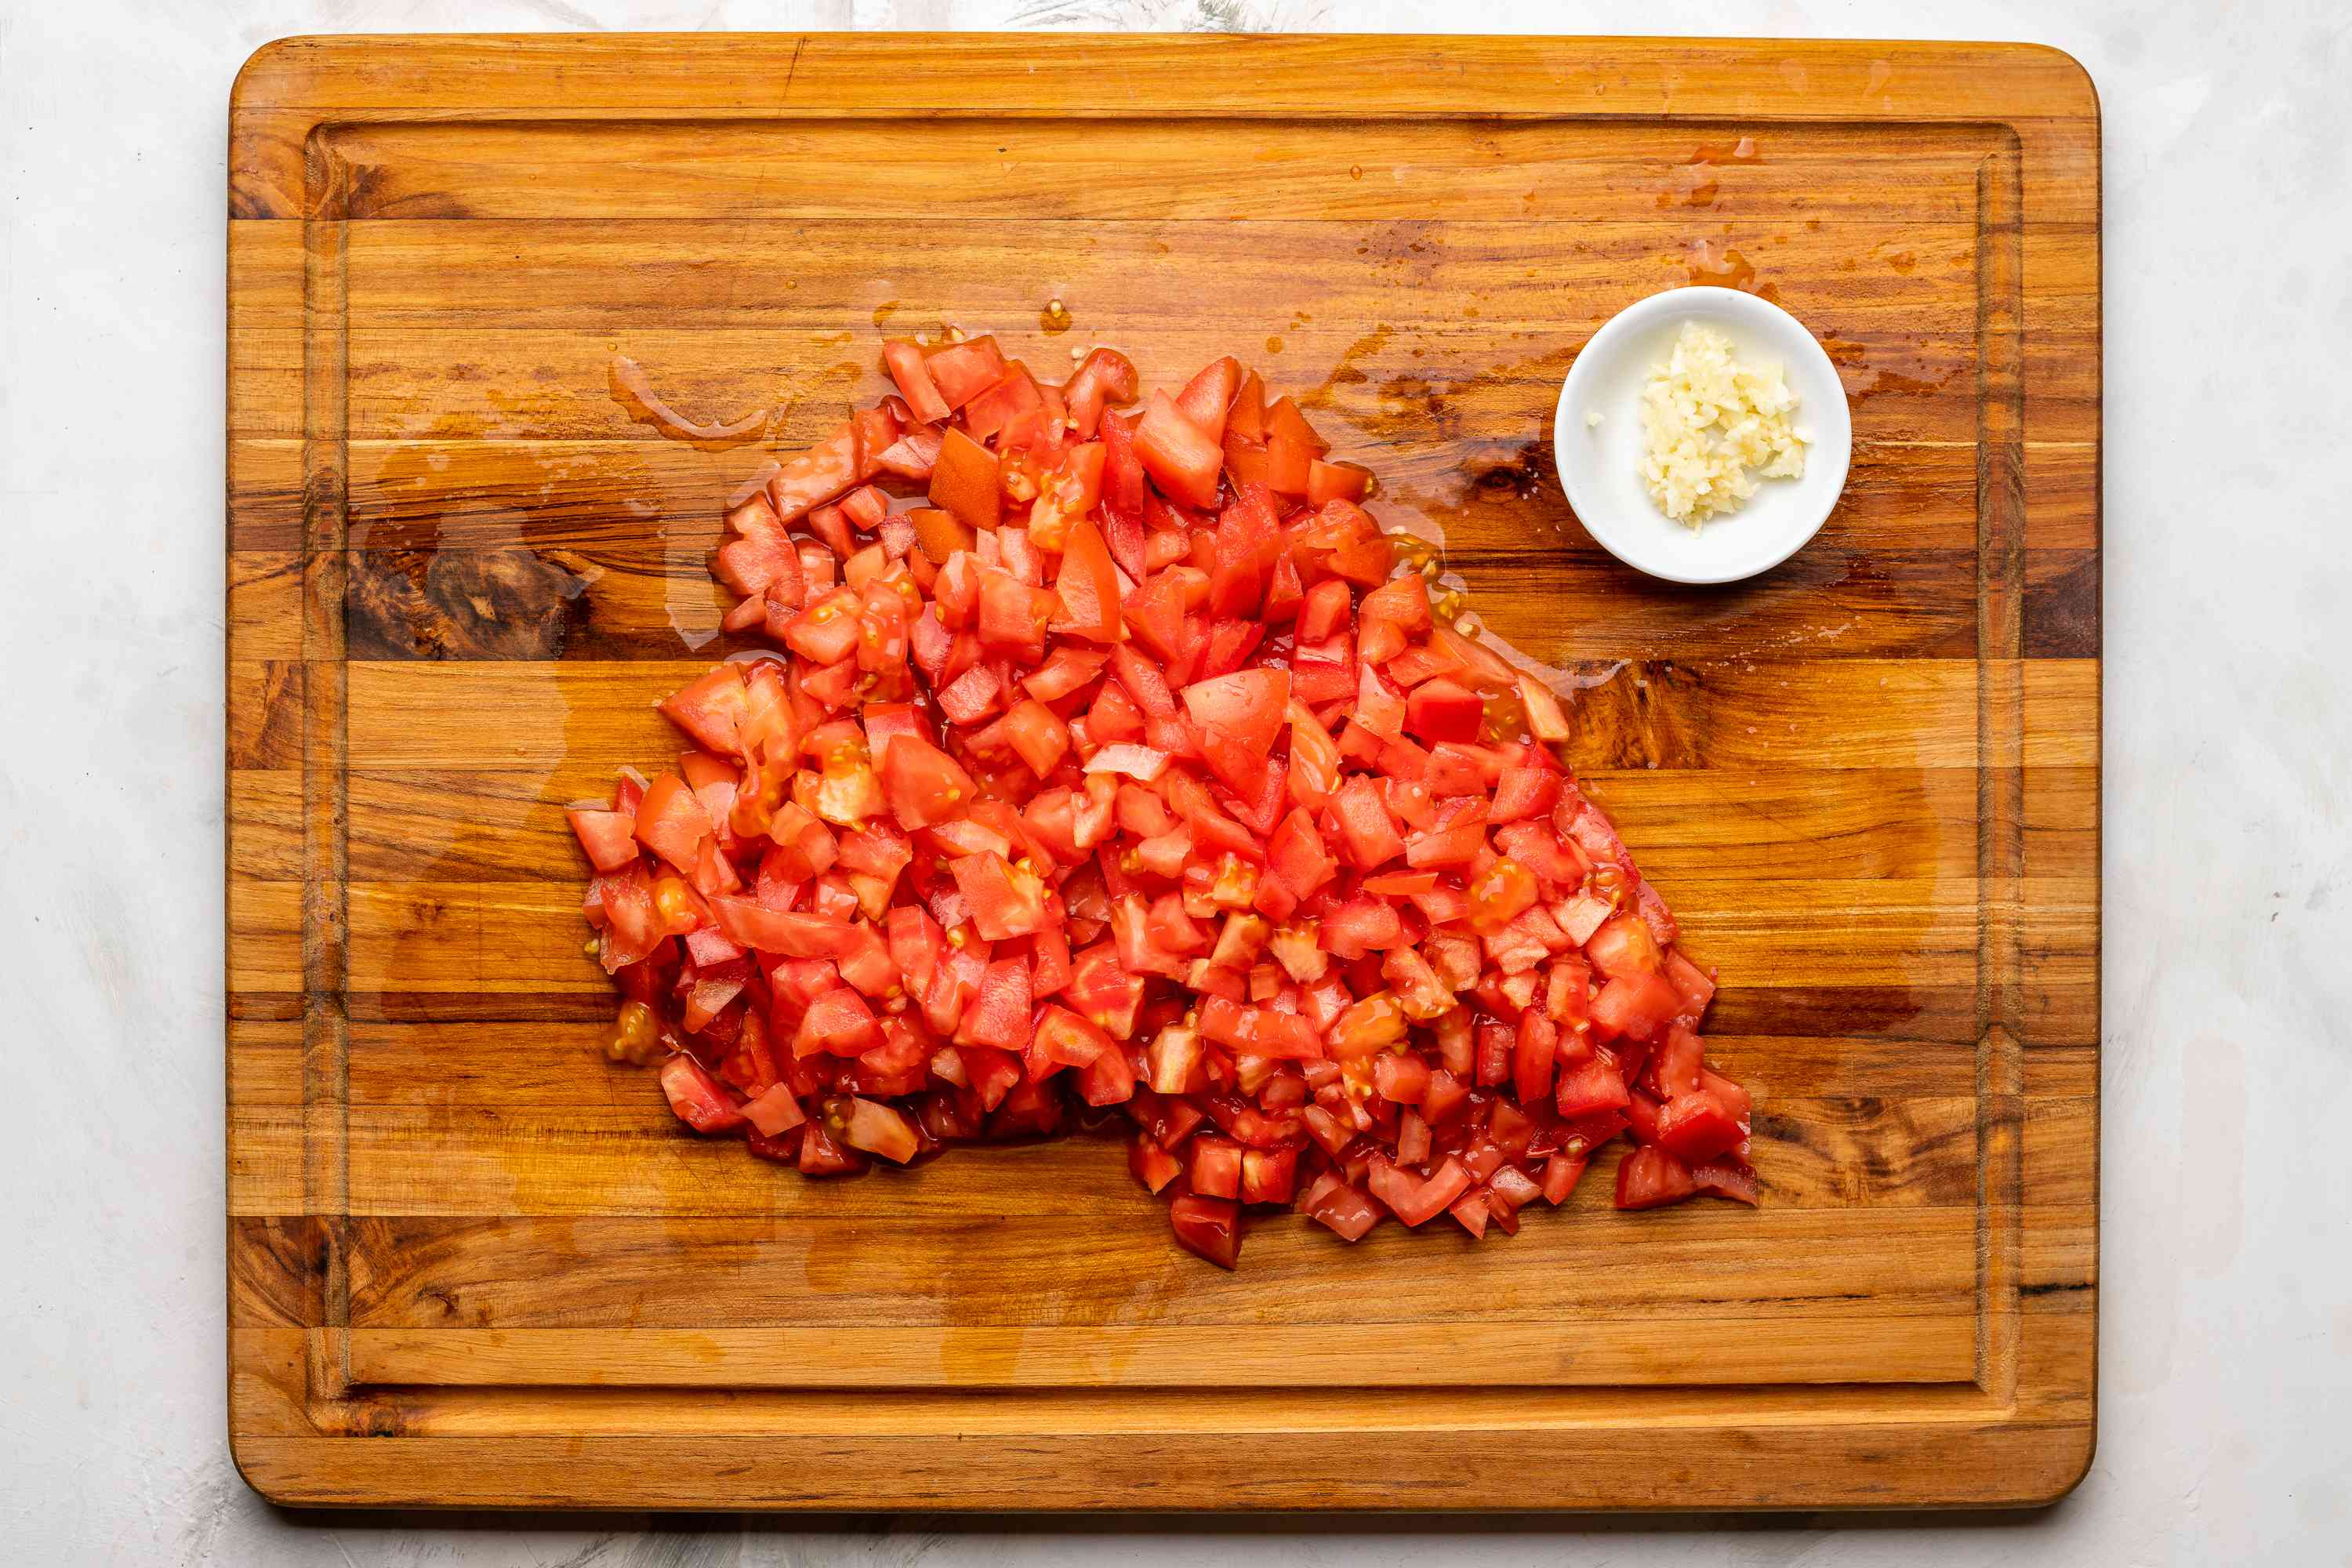 copped tomatoes on a cutting board, garlic in a bowl